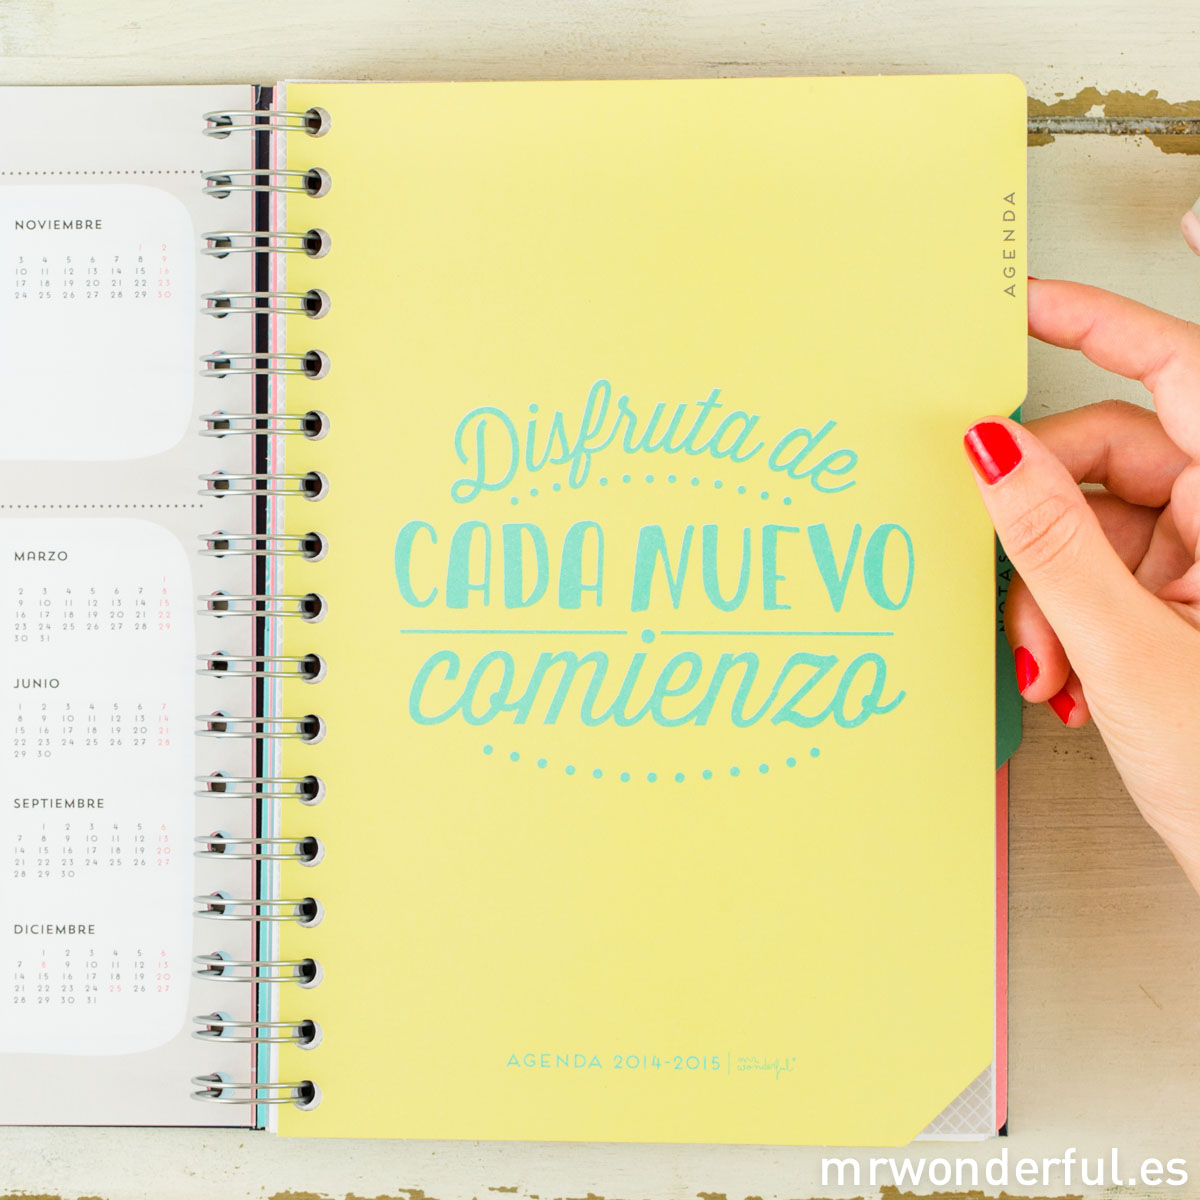 mrwonderful_AGENDA-WONDER_2014-198